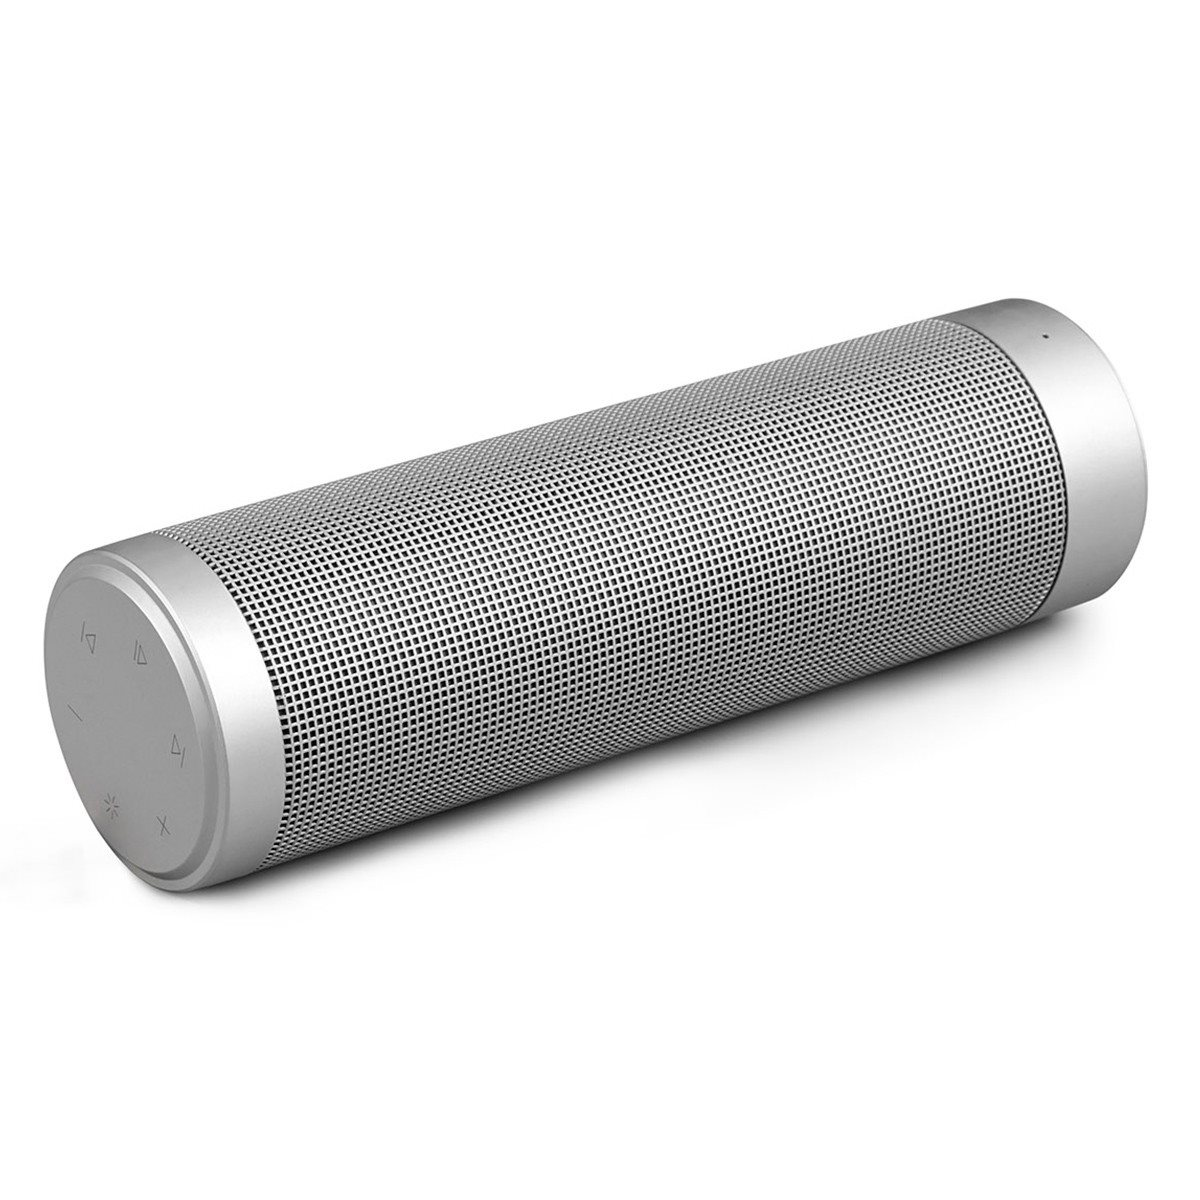 Best Quality NFC LED Bluetooth 4.0 Speaker Pulsating Music Symphony Portable Speakers For Computer PC Phone Universal Altavoces(China (Mainland))